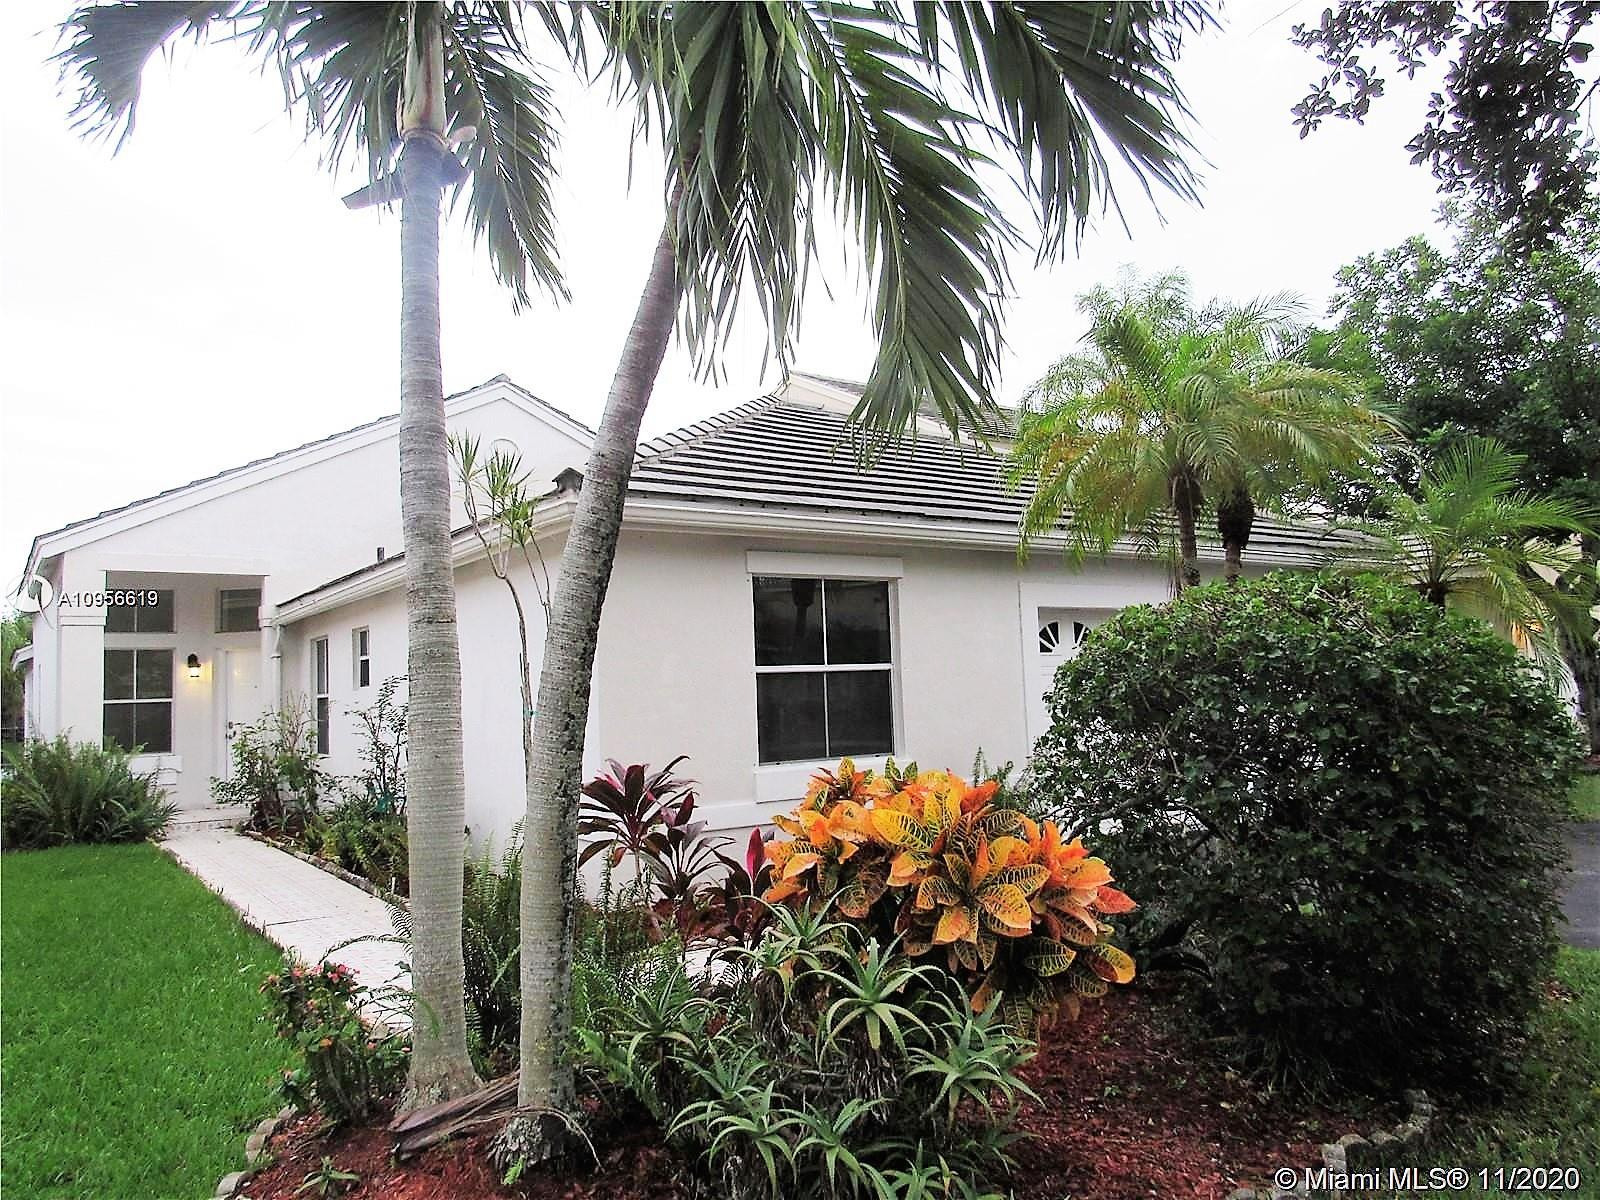 GORGEOUS WATERFRONT ONE STORY HOME AT THE LAKES AT WESTON, A+ SCHOOLS ALL THE WAY TO HIGH SCHOOL, COMMUNITY POOL, 24 HRS SECURITY AND GATED, CONCRETE BLOCK HOME, BEAUTIFUL PLACE READY TO MOVE IN, 5,677 LOT , STAINLESS STEEL APPLIANCES, NEW HIGH EFFICIENT TOILETS AND MORE